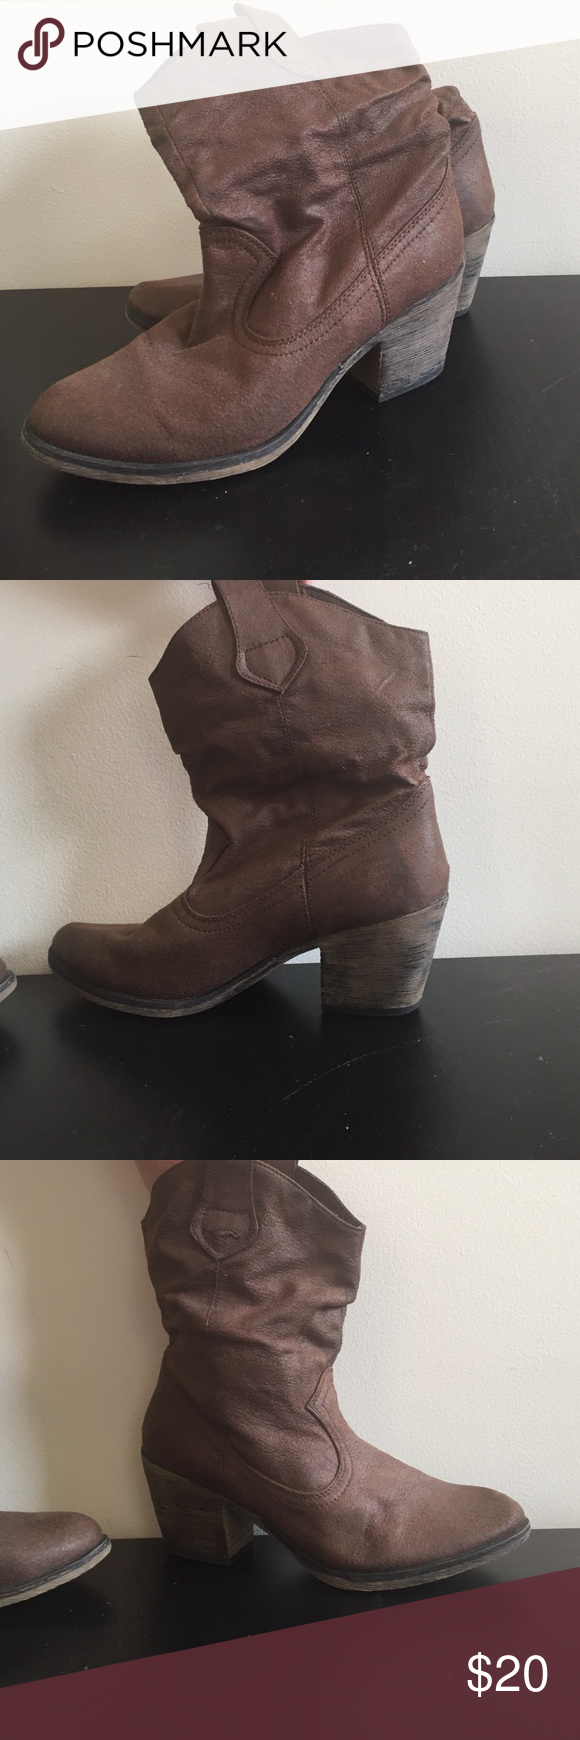 Rocket Dog cowgirl boots Comfortable short cowgirl boots Rocket Dog Shoes Ankle Boots & Booties